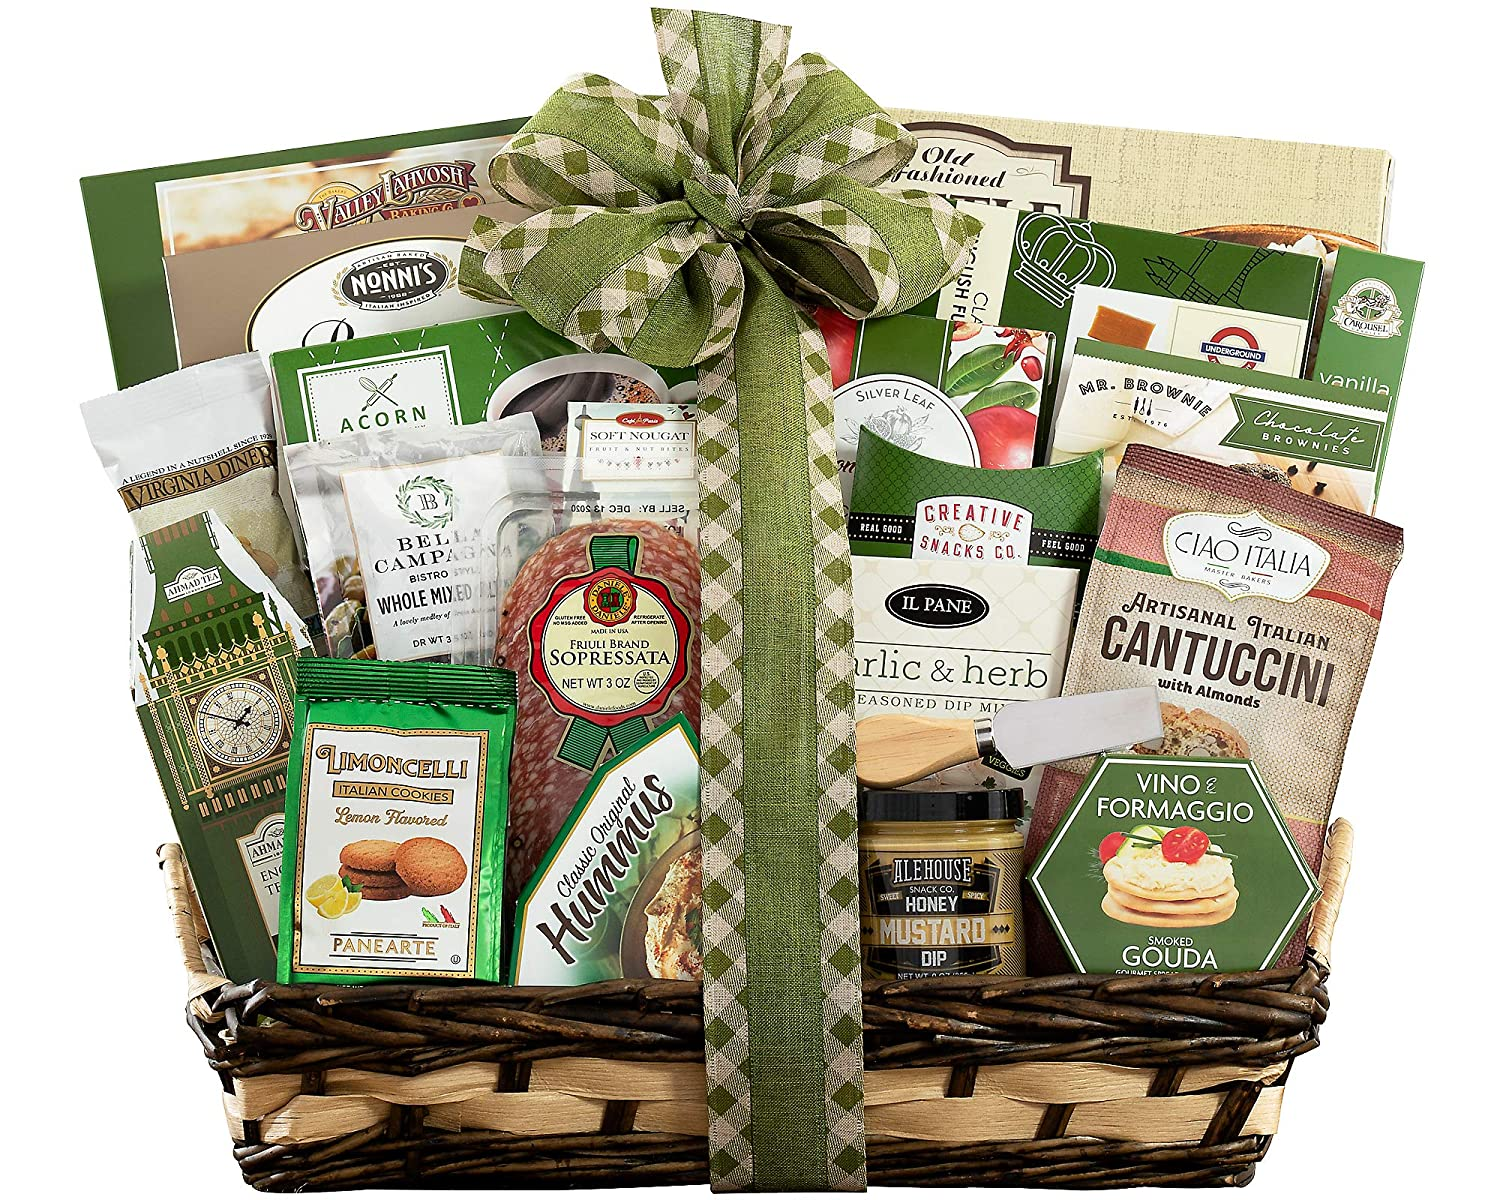 Sympathy Gift Basket- With Our Sincere Condolences Sympathy Gift Basket by Wine Country Gift Baskets